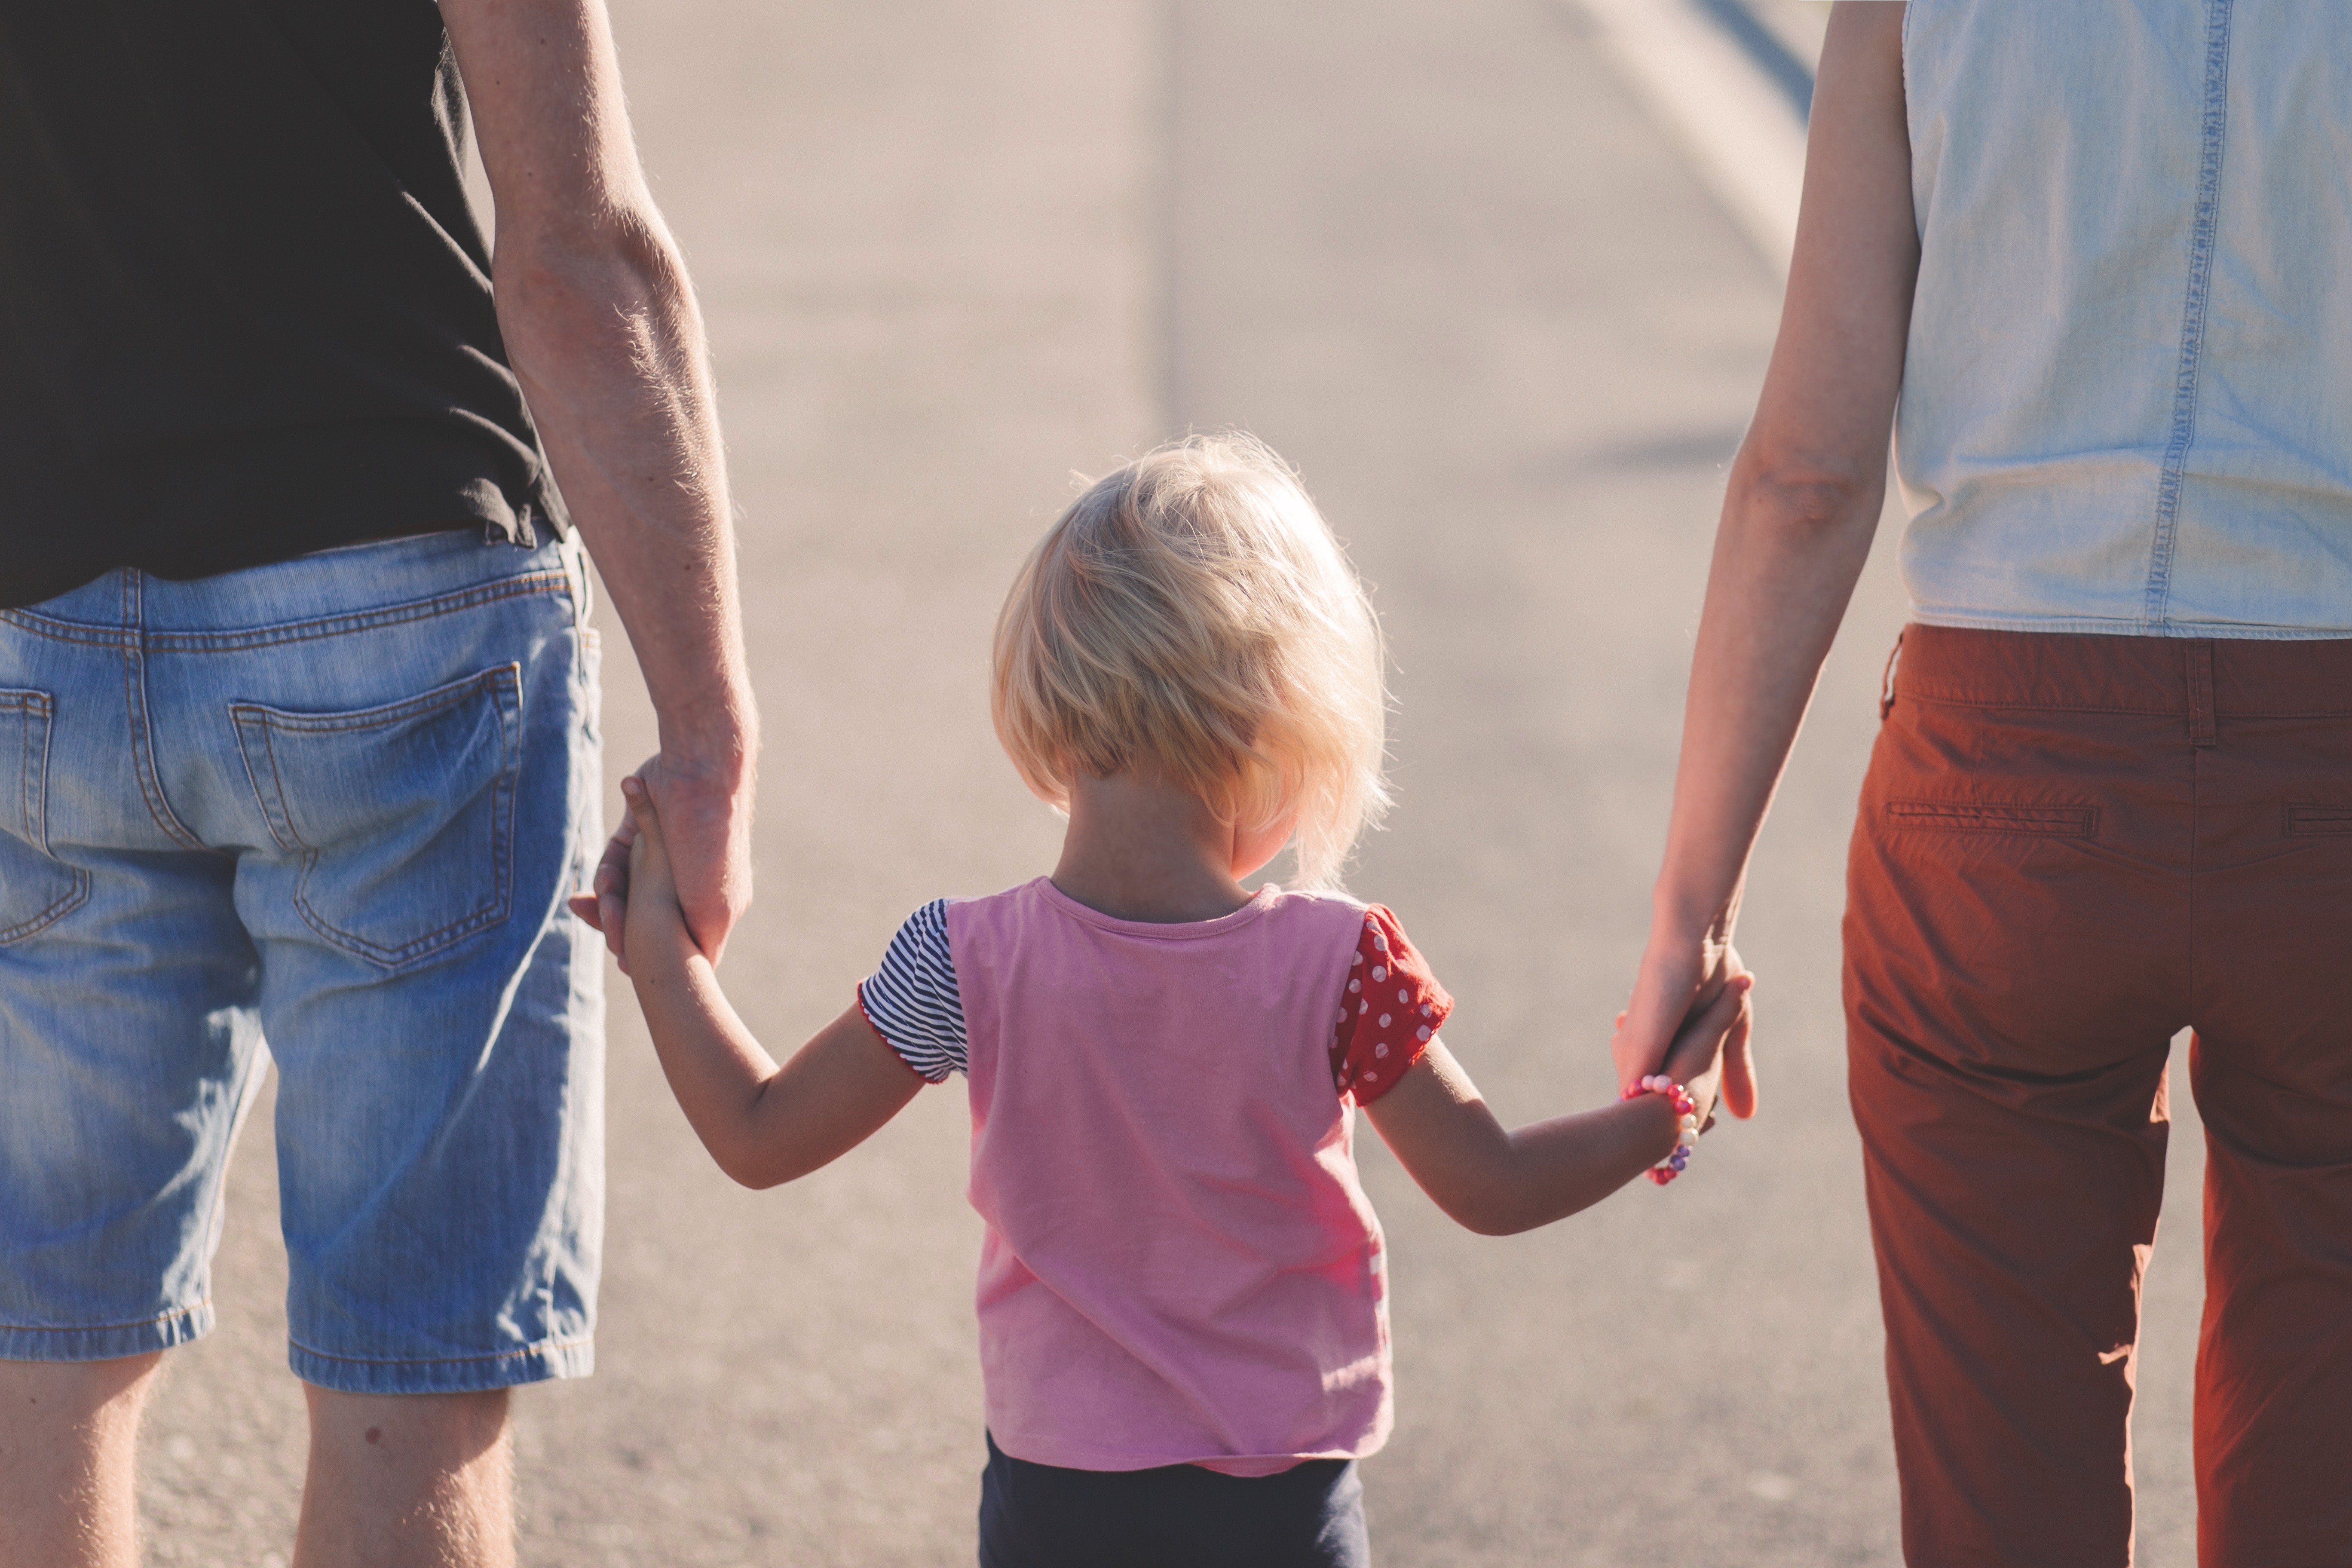 All thanks to Alex, I got a beautiful family | Photo: Pexels